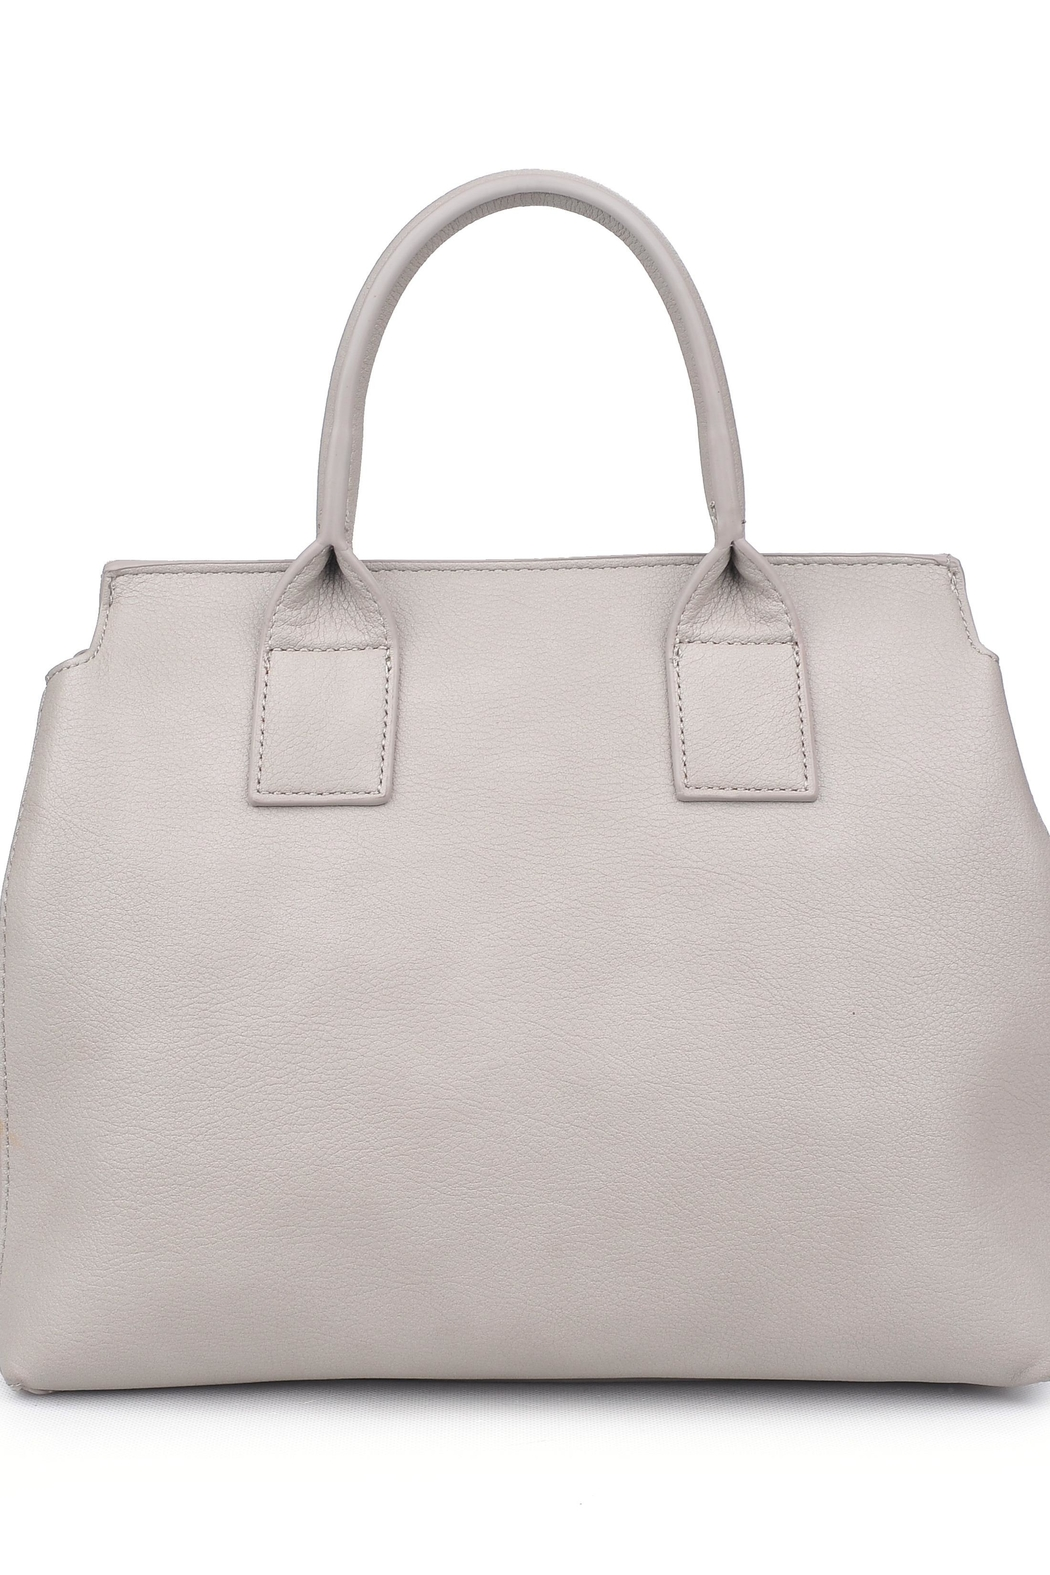 Moda Luxe Clare Bag - Front Full Image